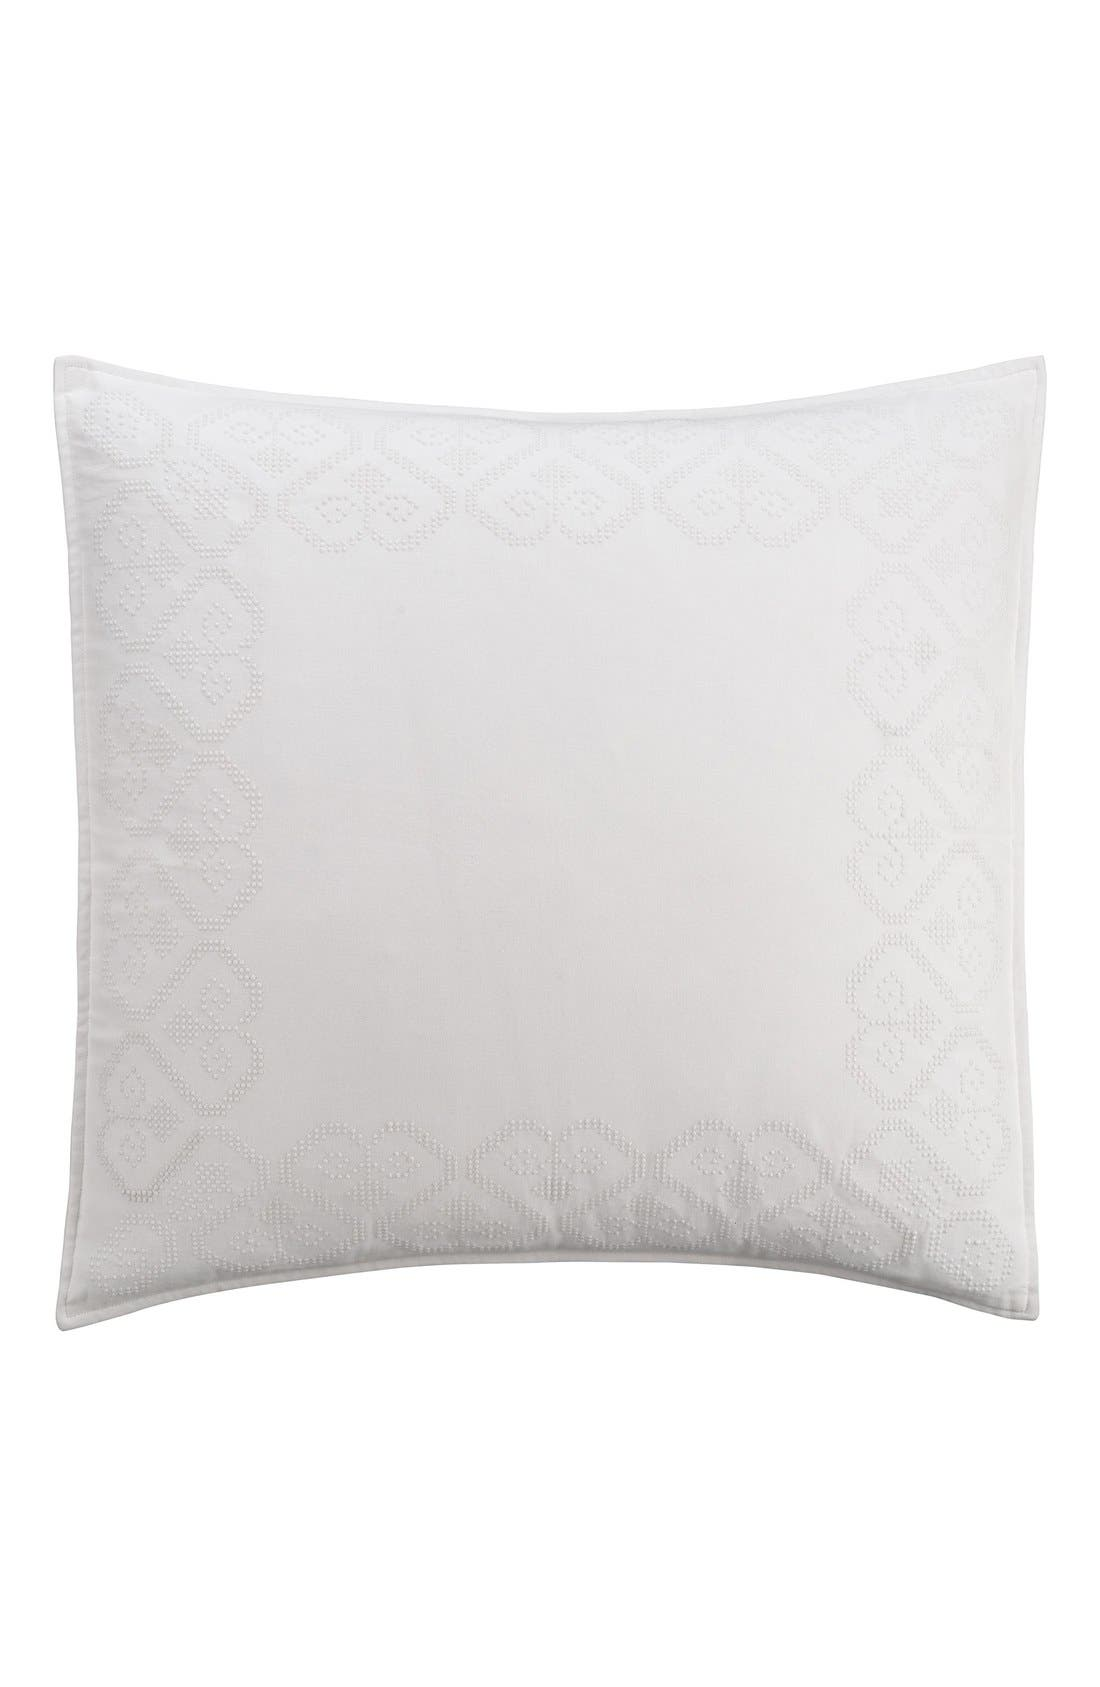 'Lace Medallion' Euro Sham,                         Main,                         color, 100